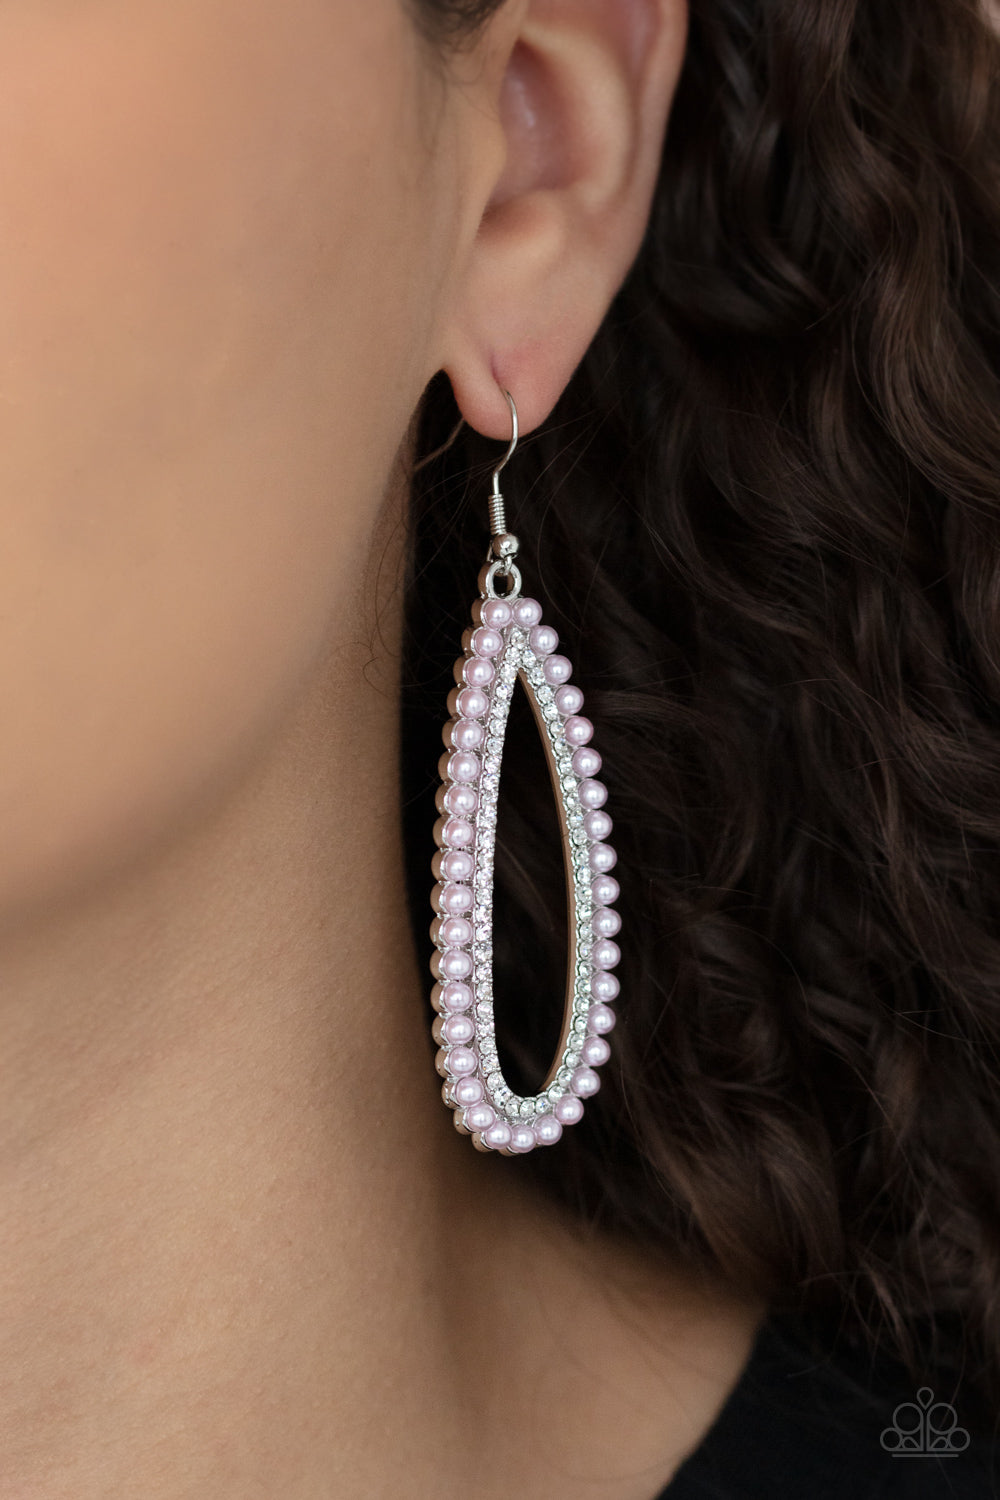 Glamorously Glowing - Pink Earrings - Paparazzi Accessories